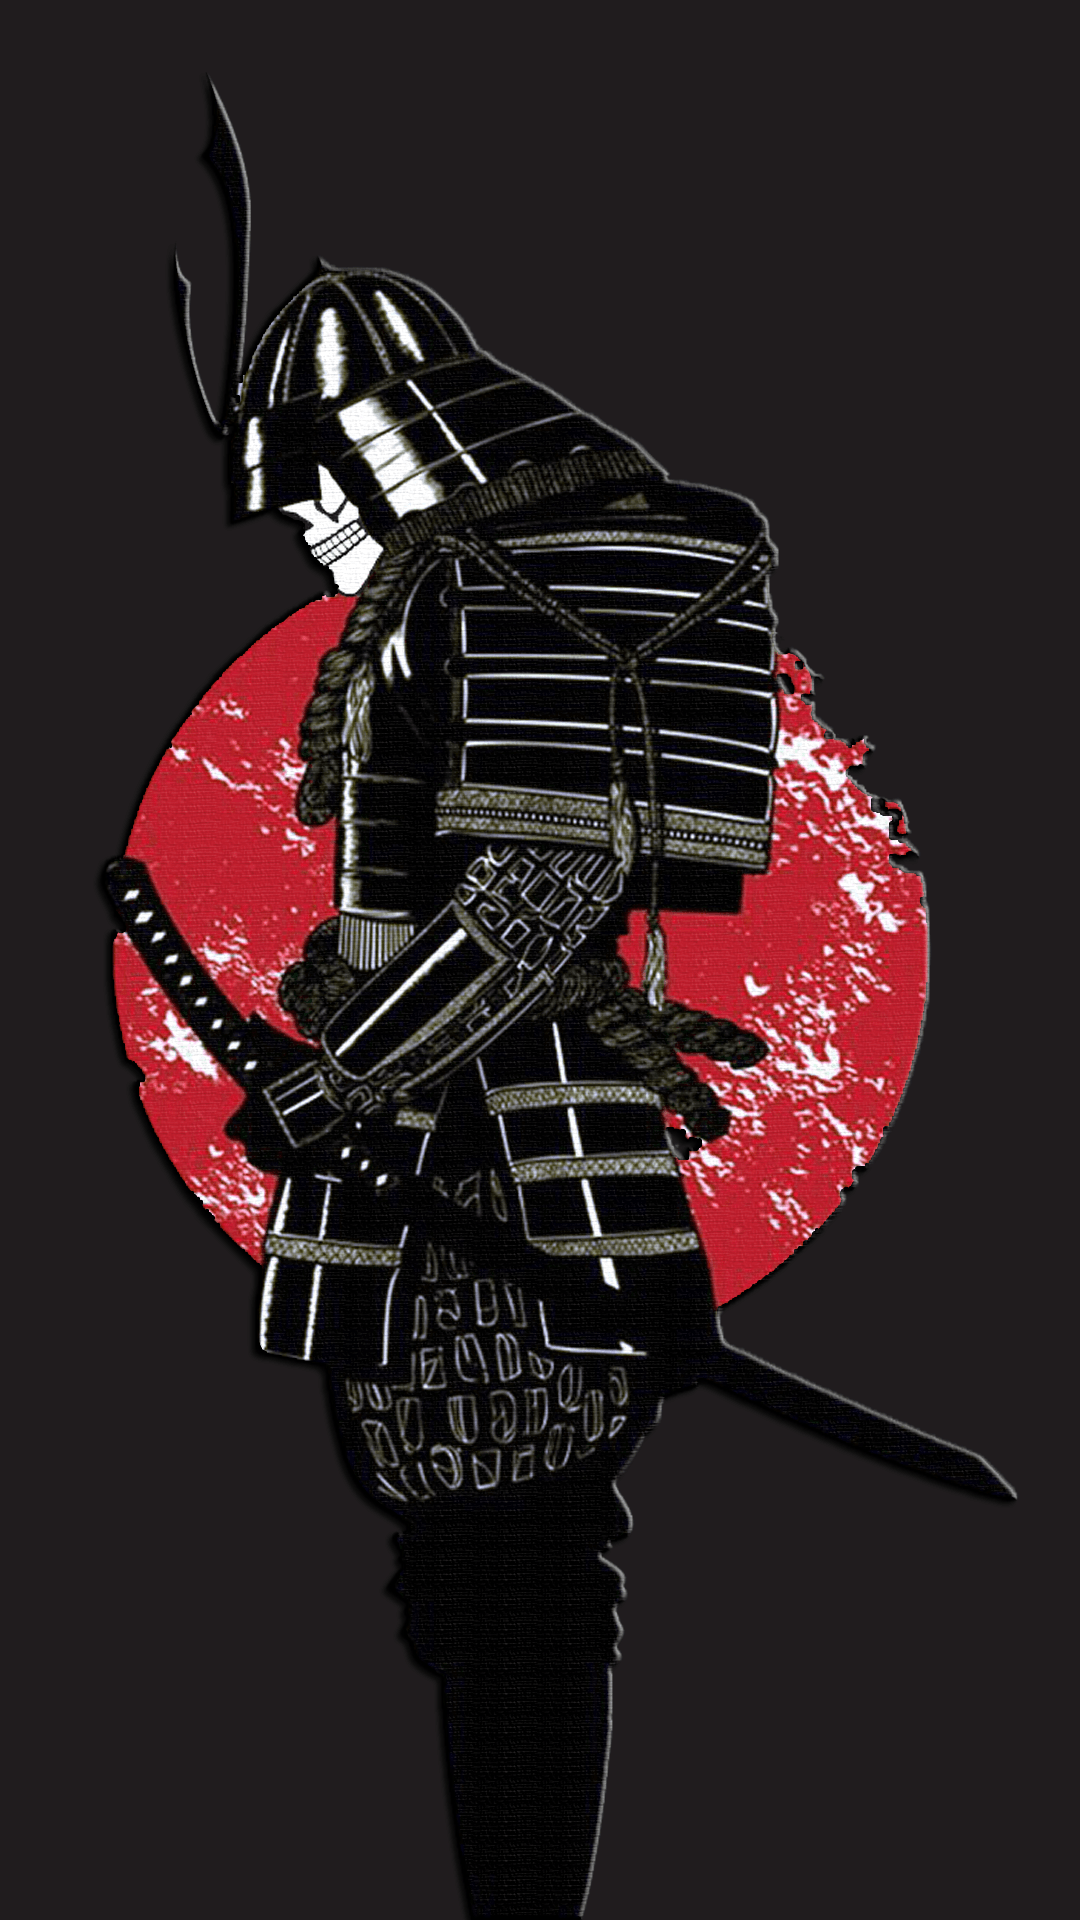 Japanese Samurai Iphone Wallpapers Top Free Japanese